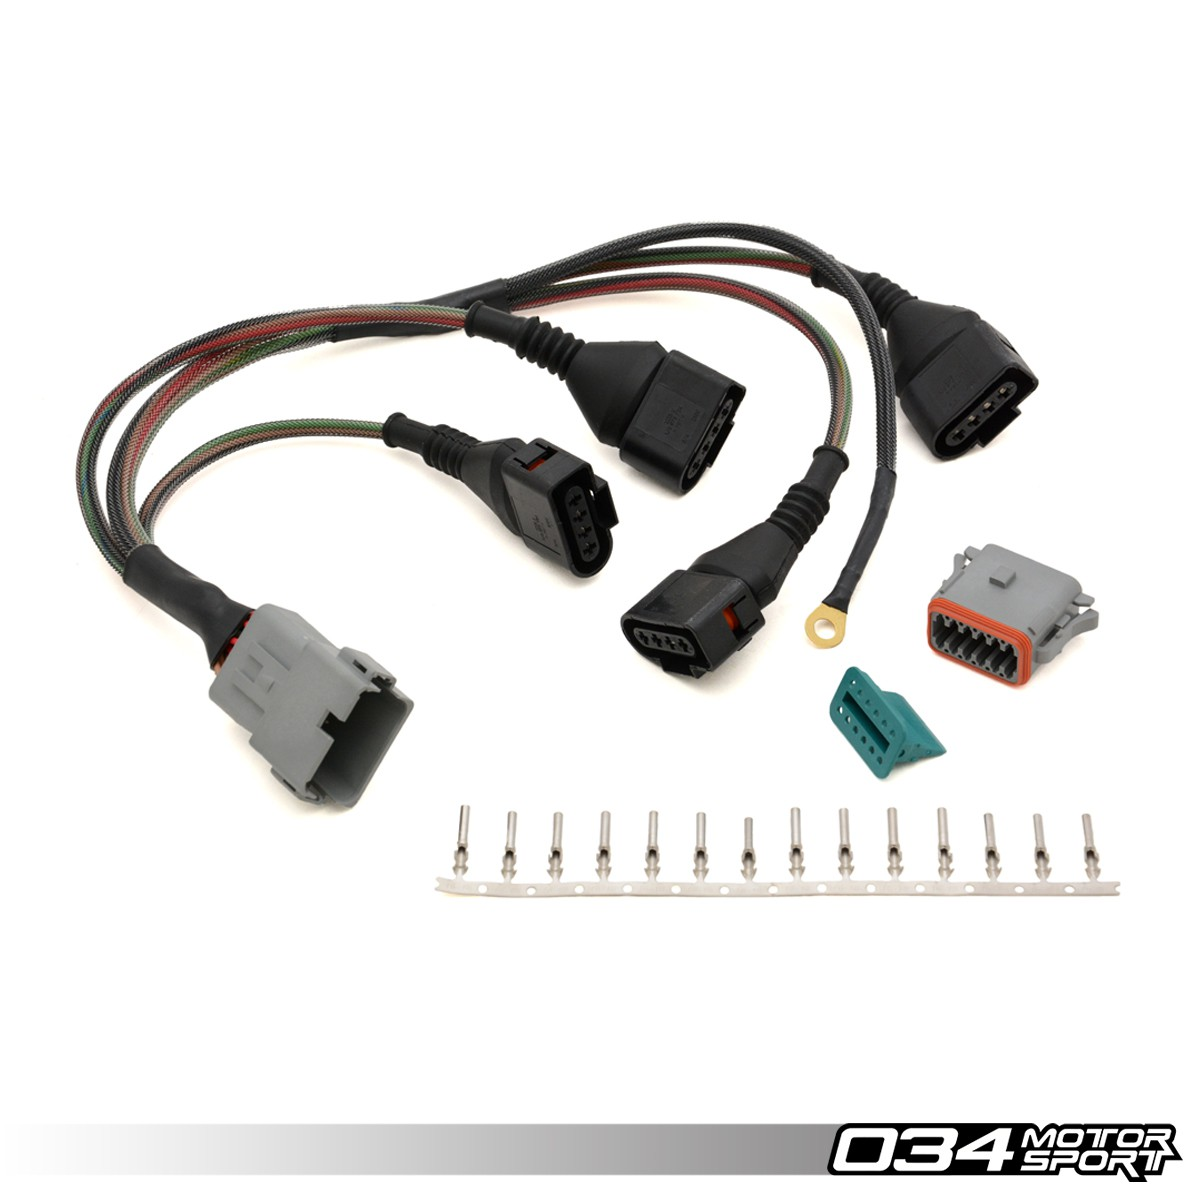 repair update harness audi volkswagen 18t with 4 wire coils 034motorsport 034 701 0004 2 repair update harness, audi volkswagen 1 8t with 4 wire coils 2001 Audi A6 Turbo Engine at soozxer.org